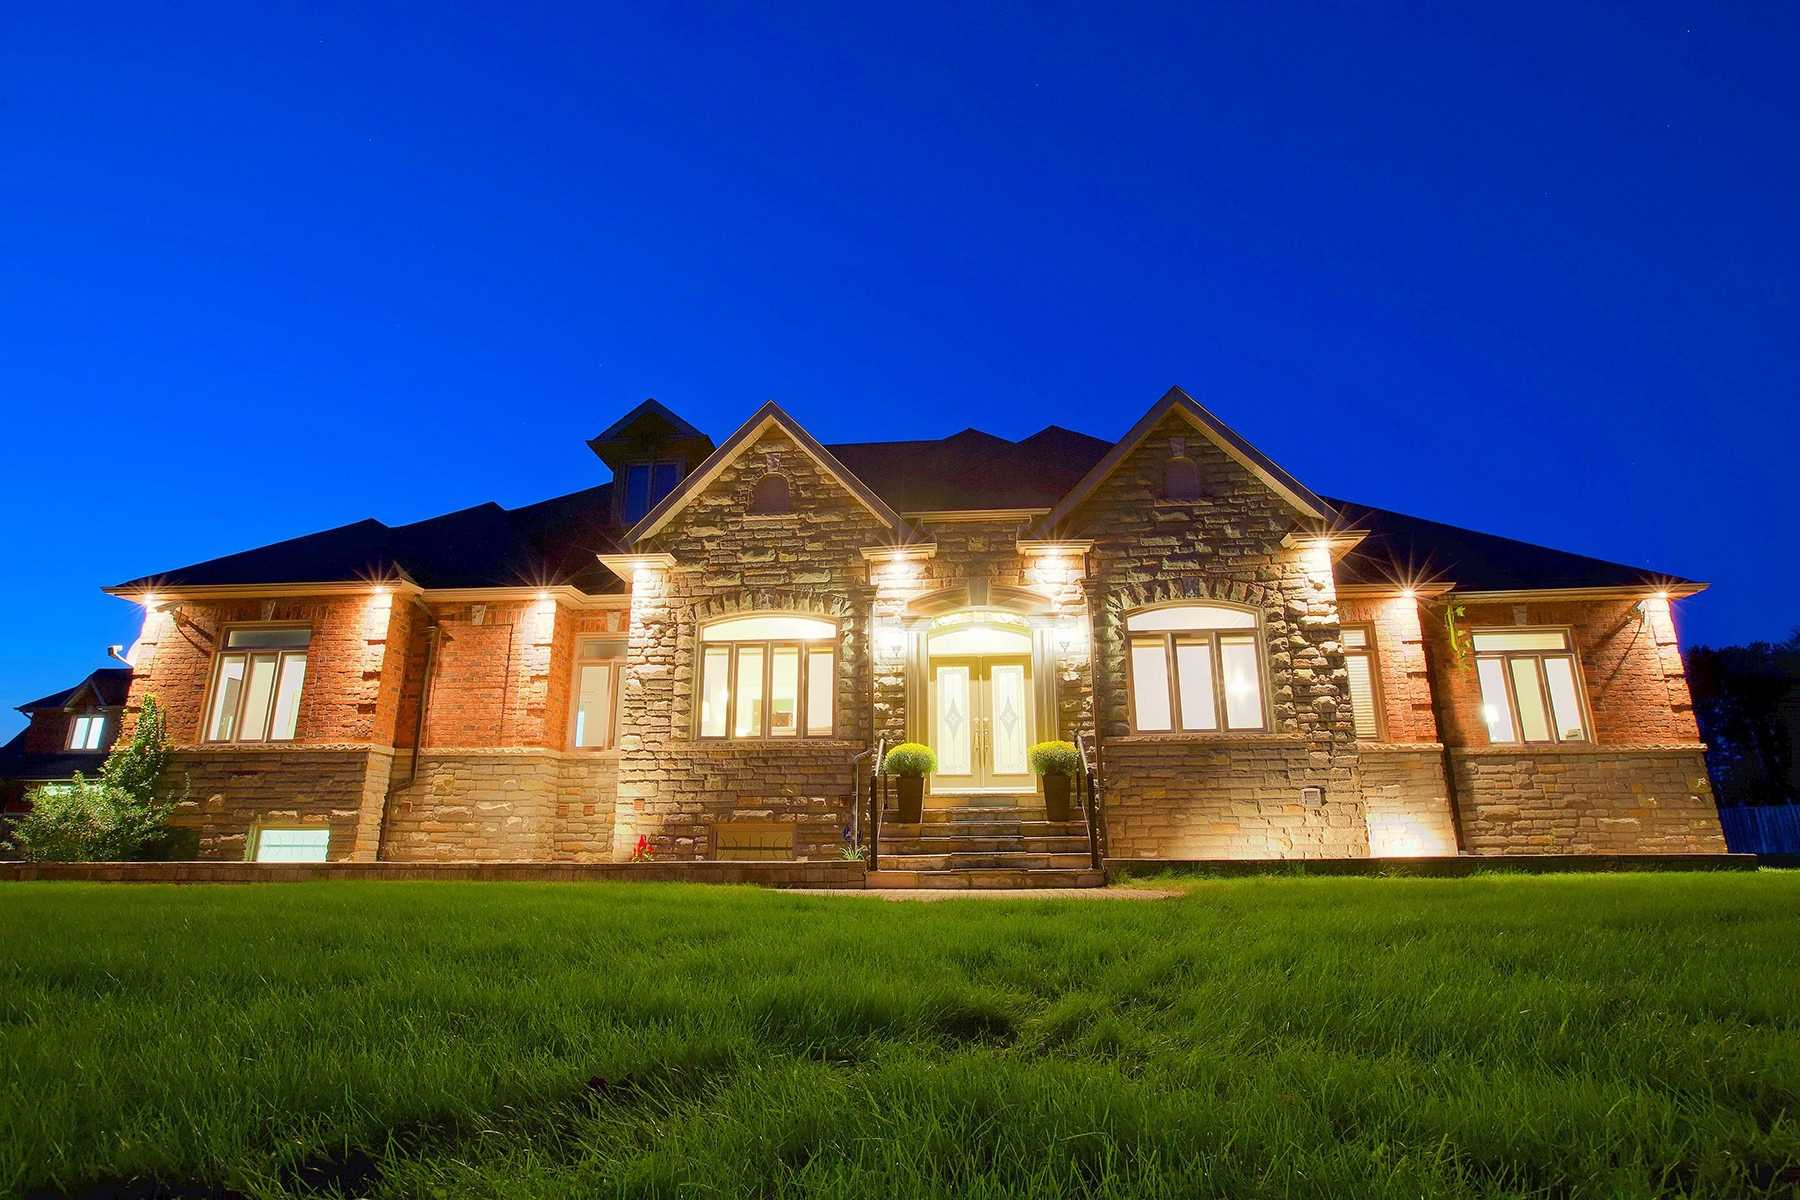 5410 Lakeshore Rd, Whitchurch-Stouffville, Ontario L4A3C1, 4 Bedrooms Bedrooms, ,9 BathroomsBathrooms,Detached,For Sale,Lakeshore,N4930628